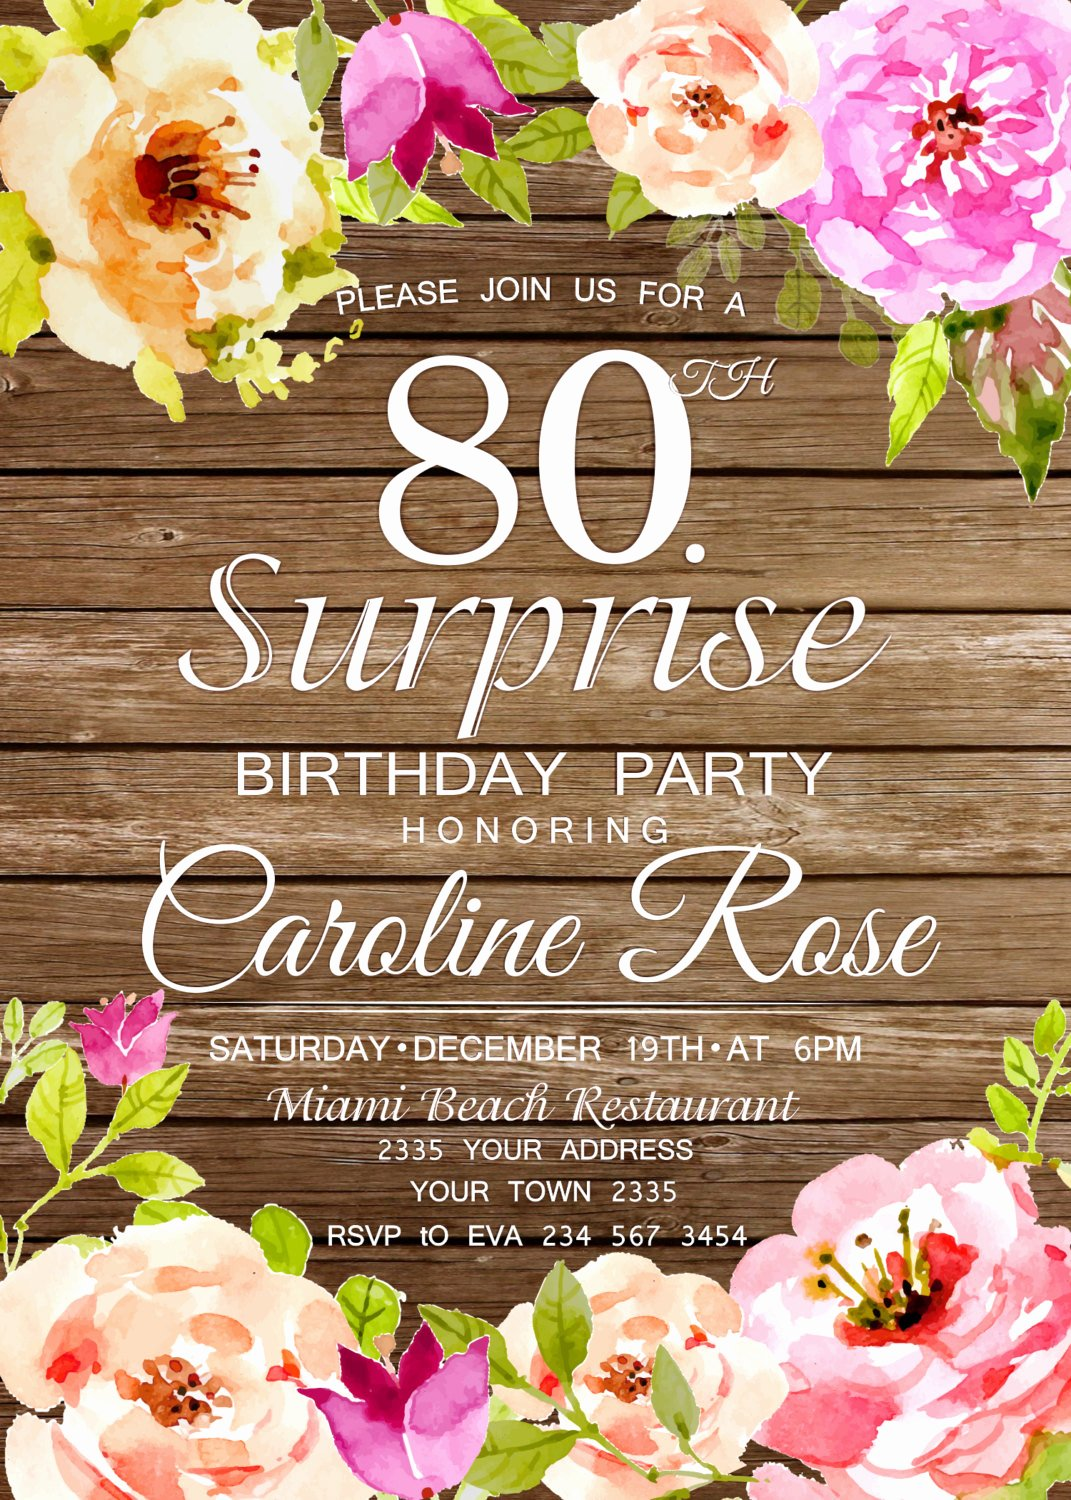 80th Birthday Party Invitations New 80th Birthday Invitation Surprise Birthday Party Invitation